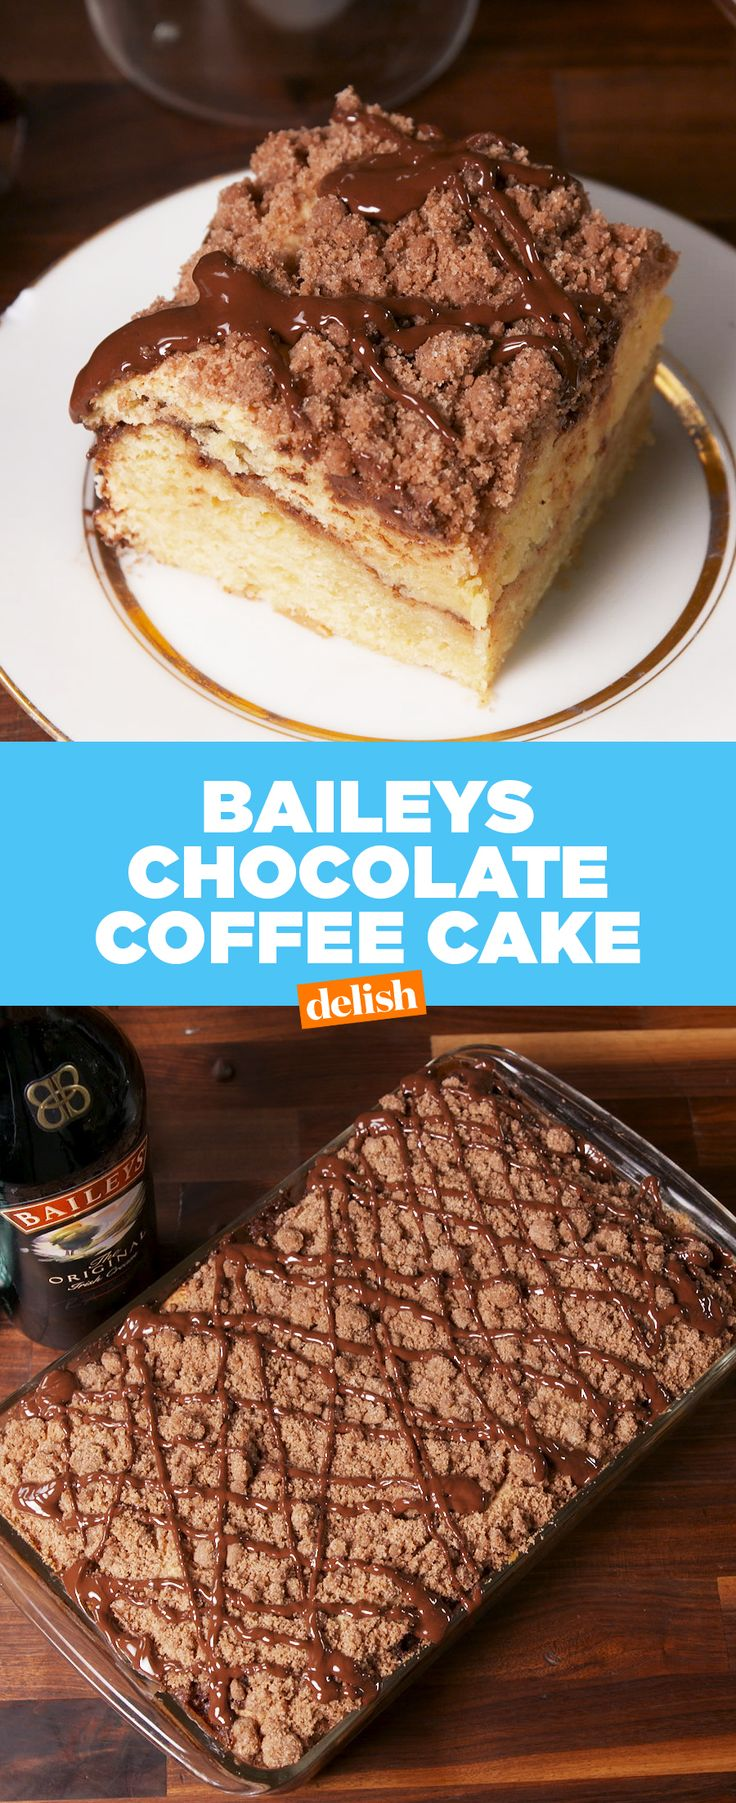 If you love Baileys + Coffee, you're gonna be OBSESSED with this cake. Get the recipe at Delish.com.